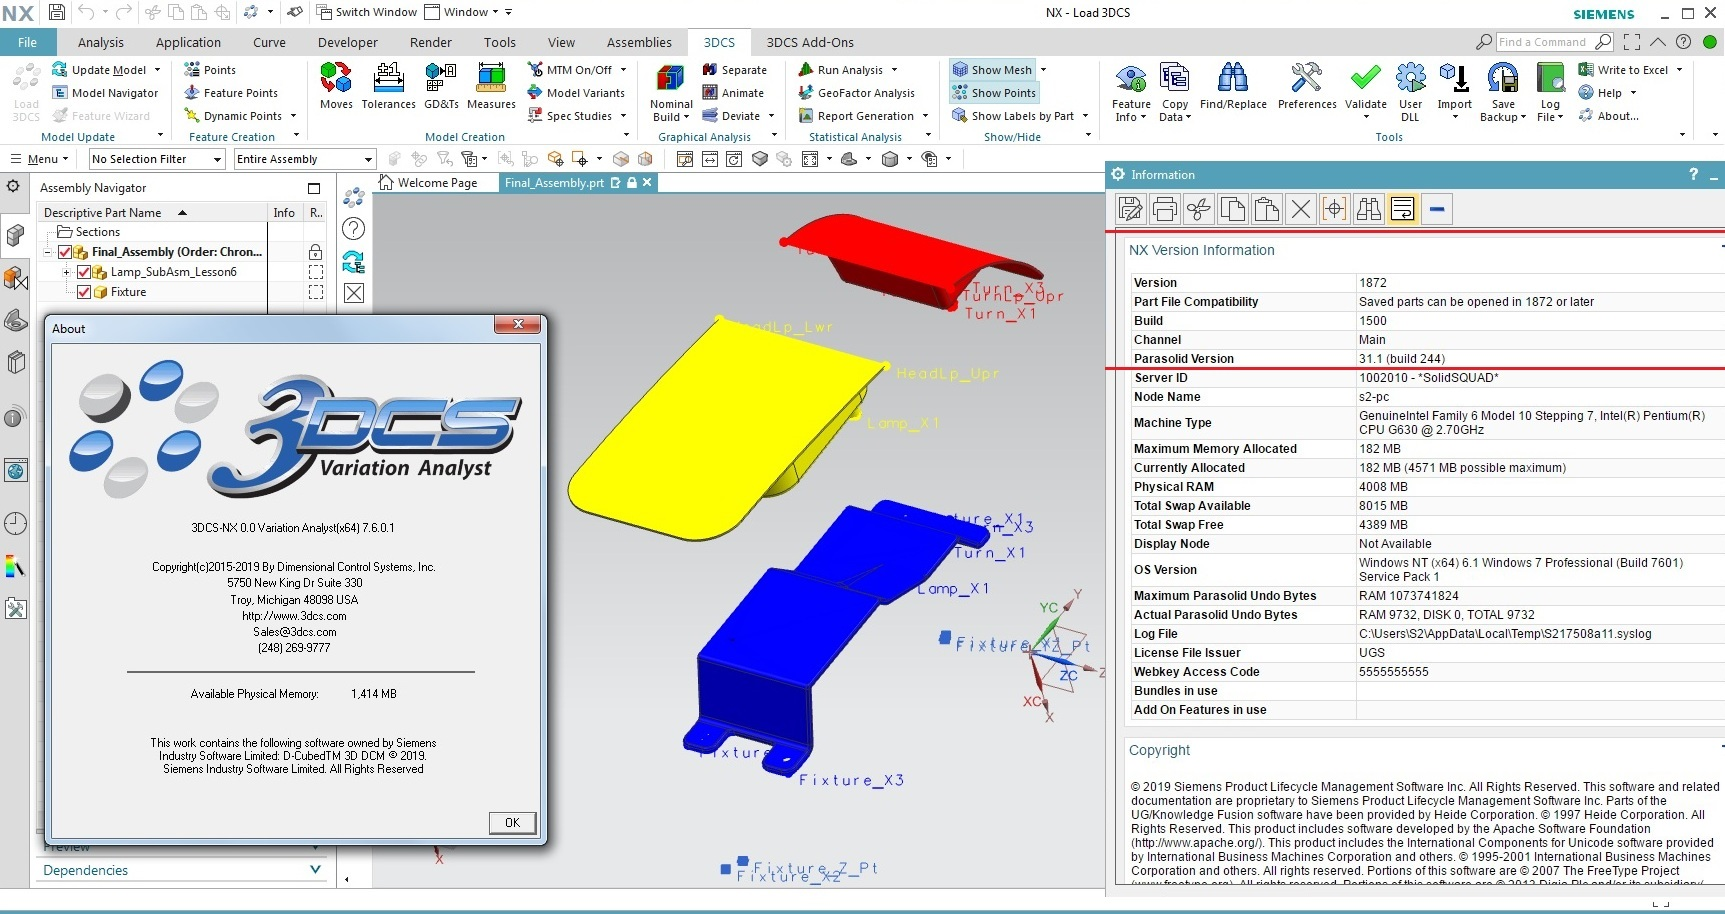 Working with 3DCS Variation Analyst 7.6.0.1 for NX 9.0-18XX full